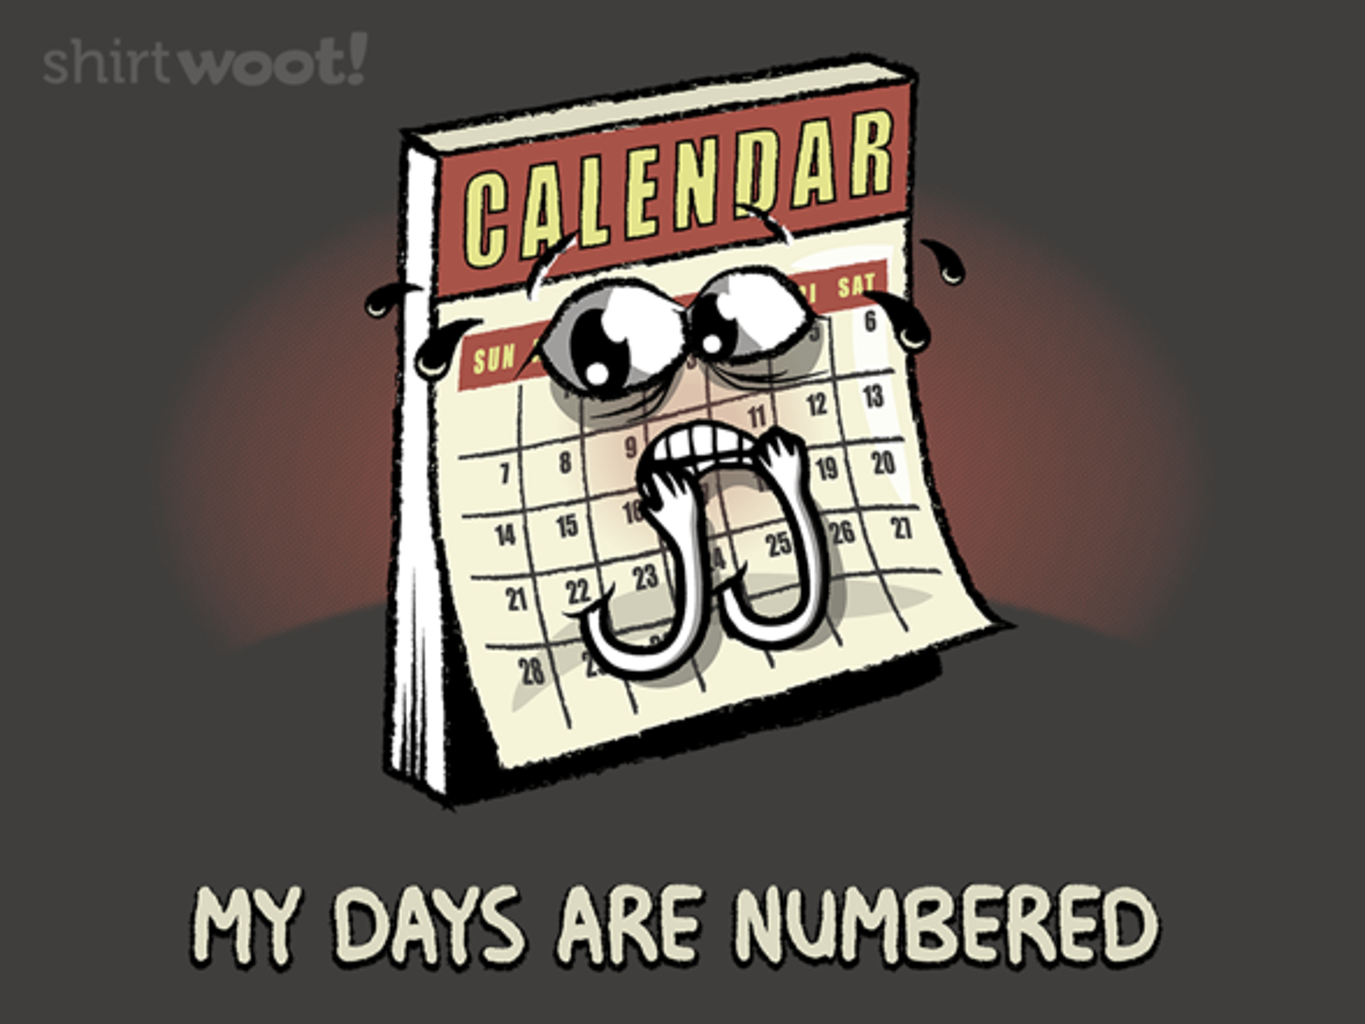 Woot!: My Days Are Numbered... - $15.00 + Free shipping